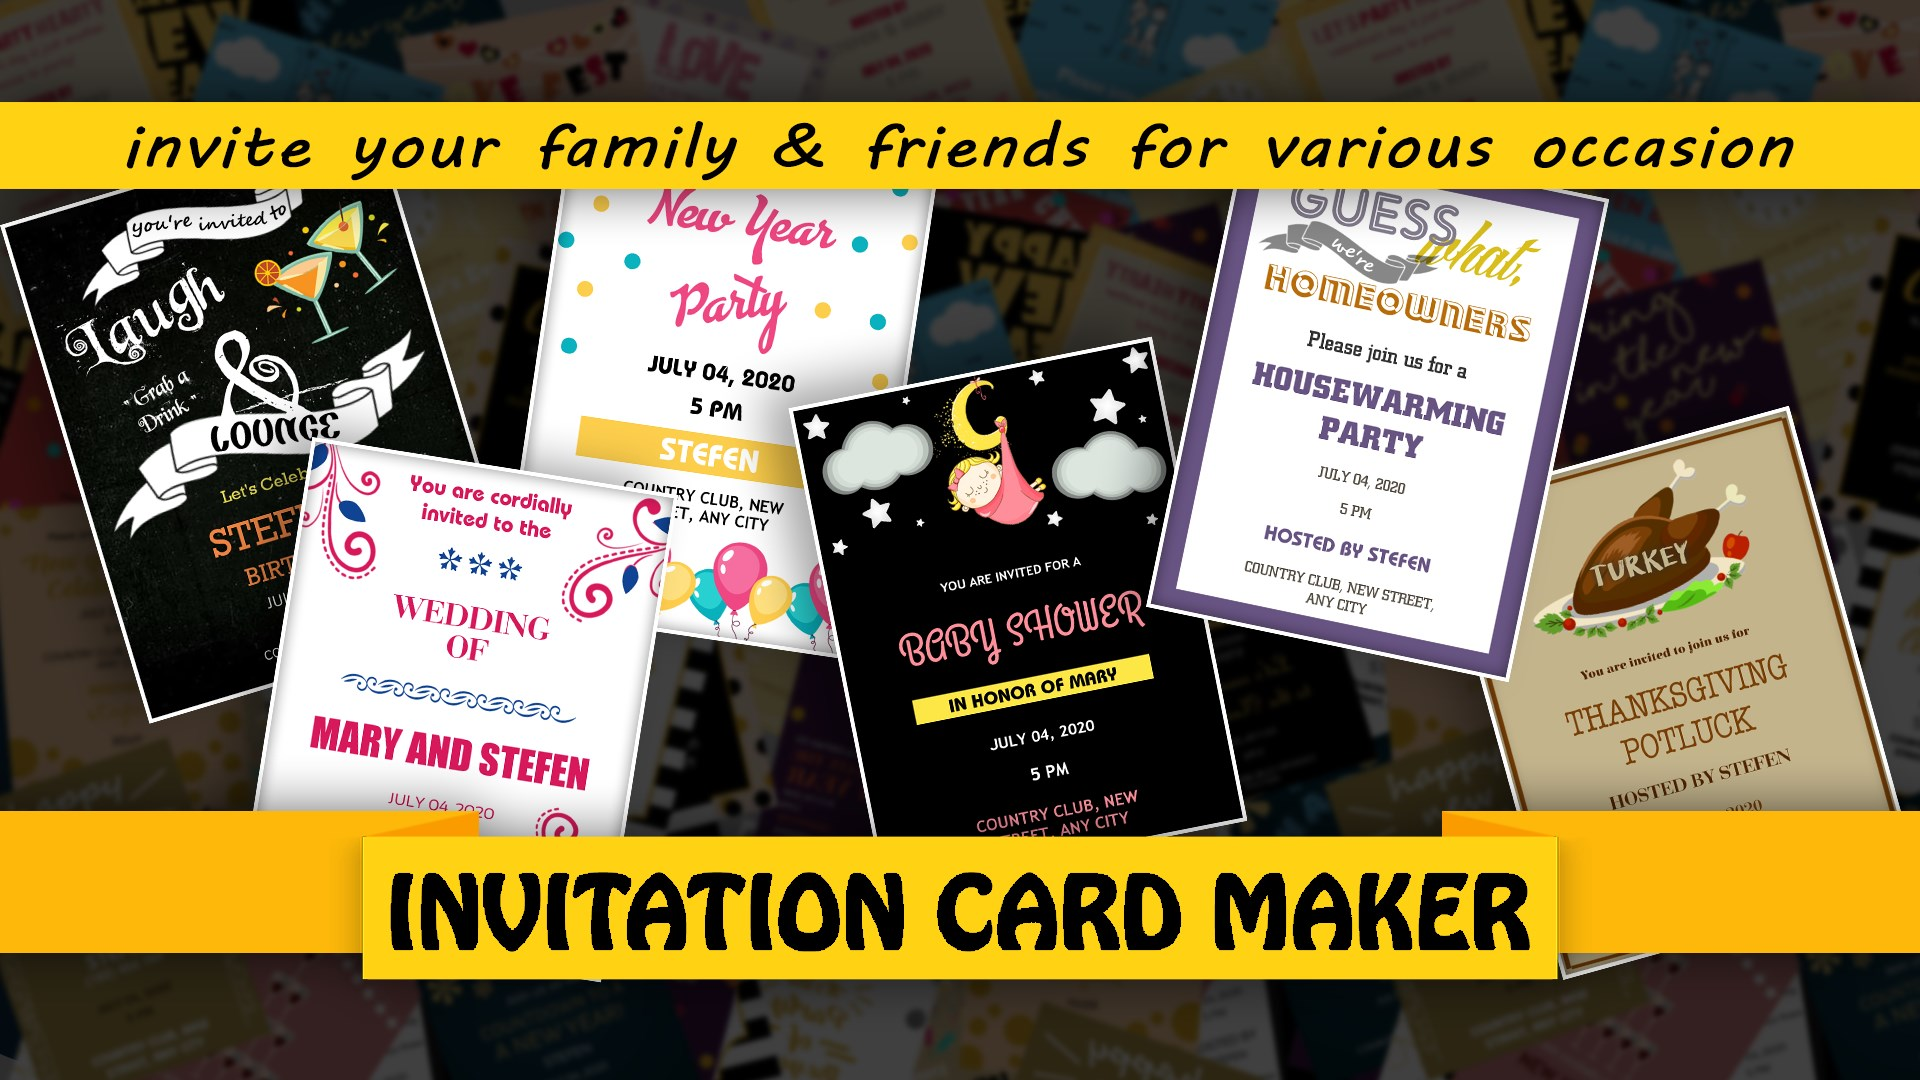 Get Invitation Card Maker: E-cards & Digital invites - Microsoft Store